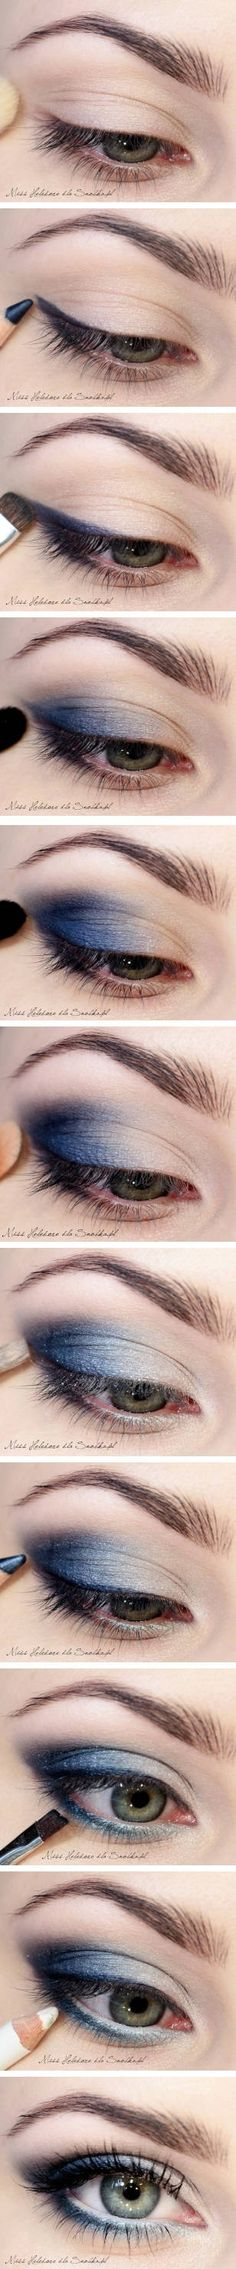 Make green or blue eyes pop with this smokey eye!